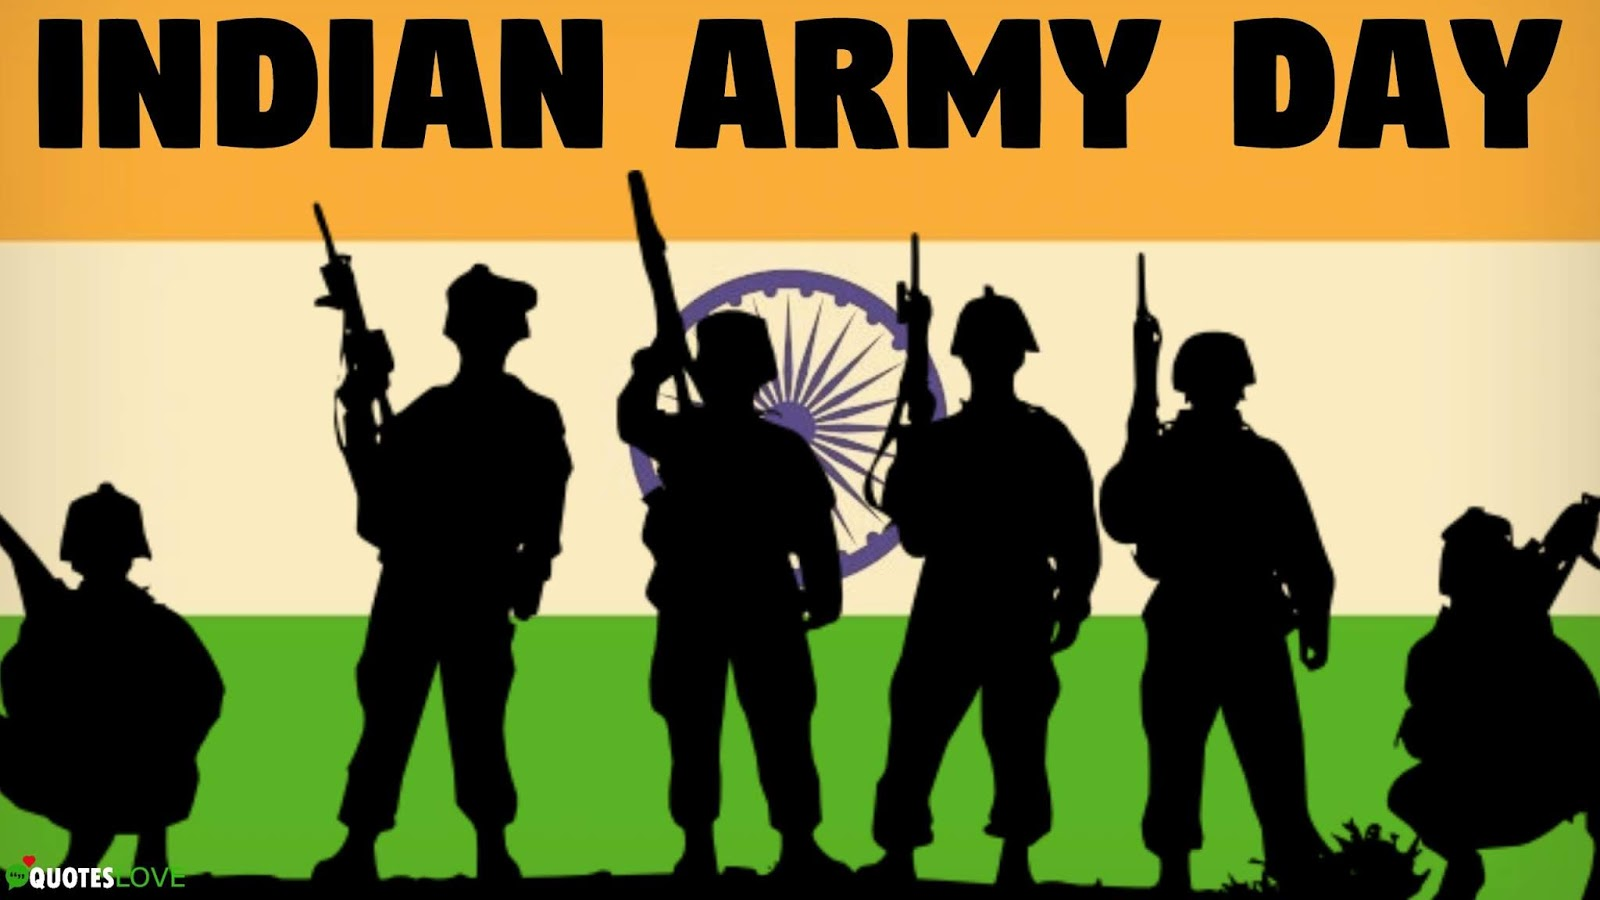 73 Best Indian Army Day Quotes Wishes Slogans Status Images 1600x900